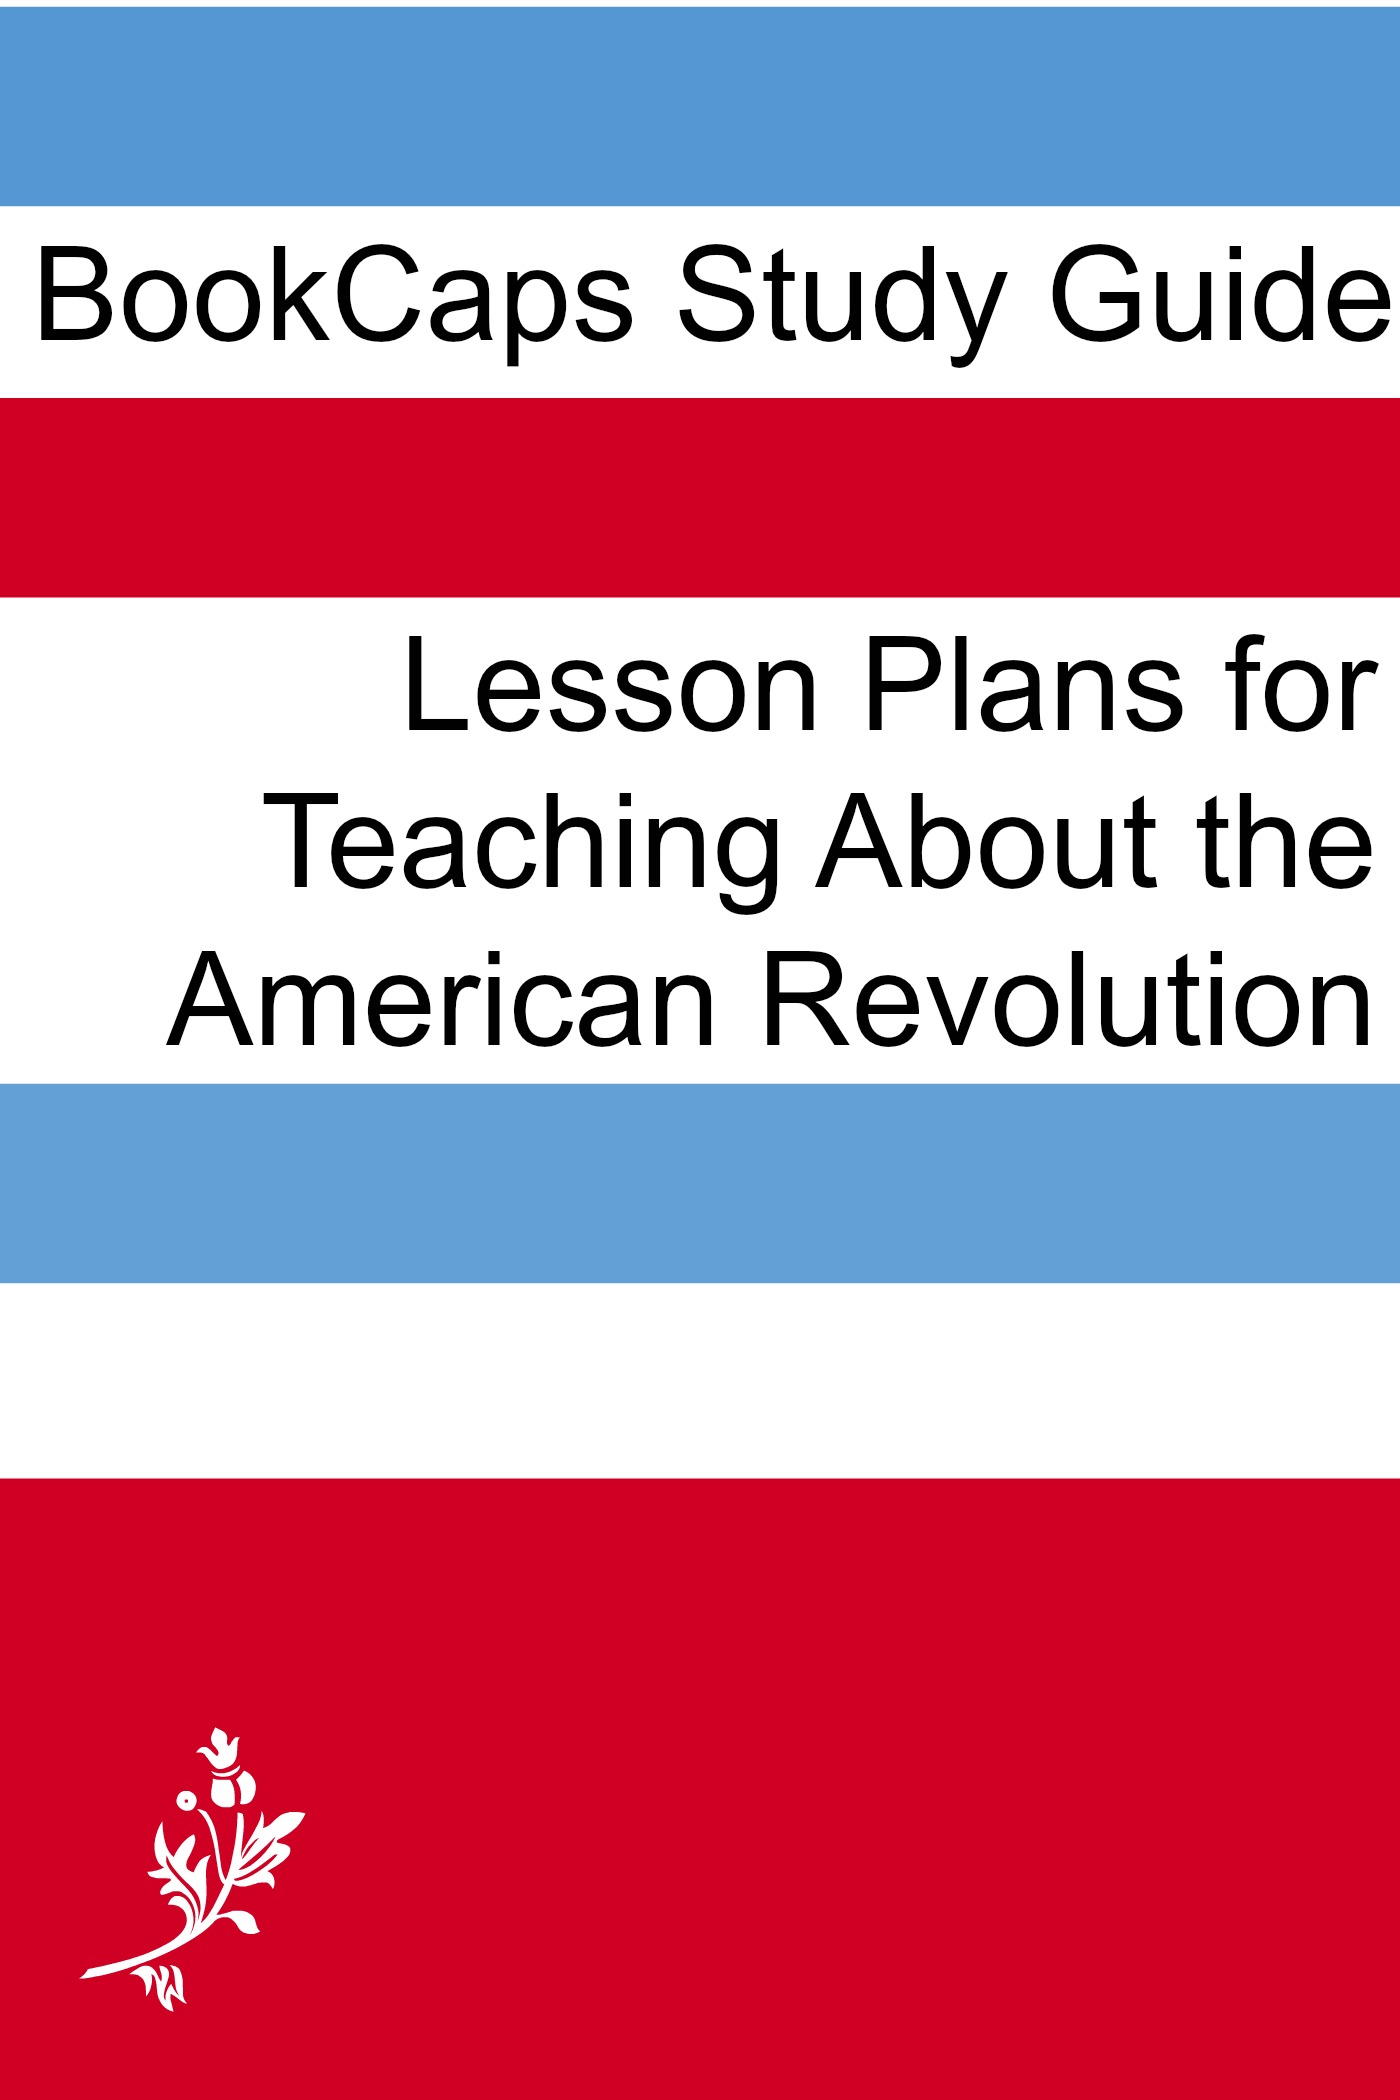 Lesson Plans for Teaching About the American Revolution By: LessonCaps